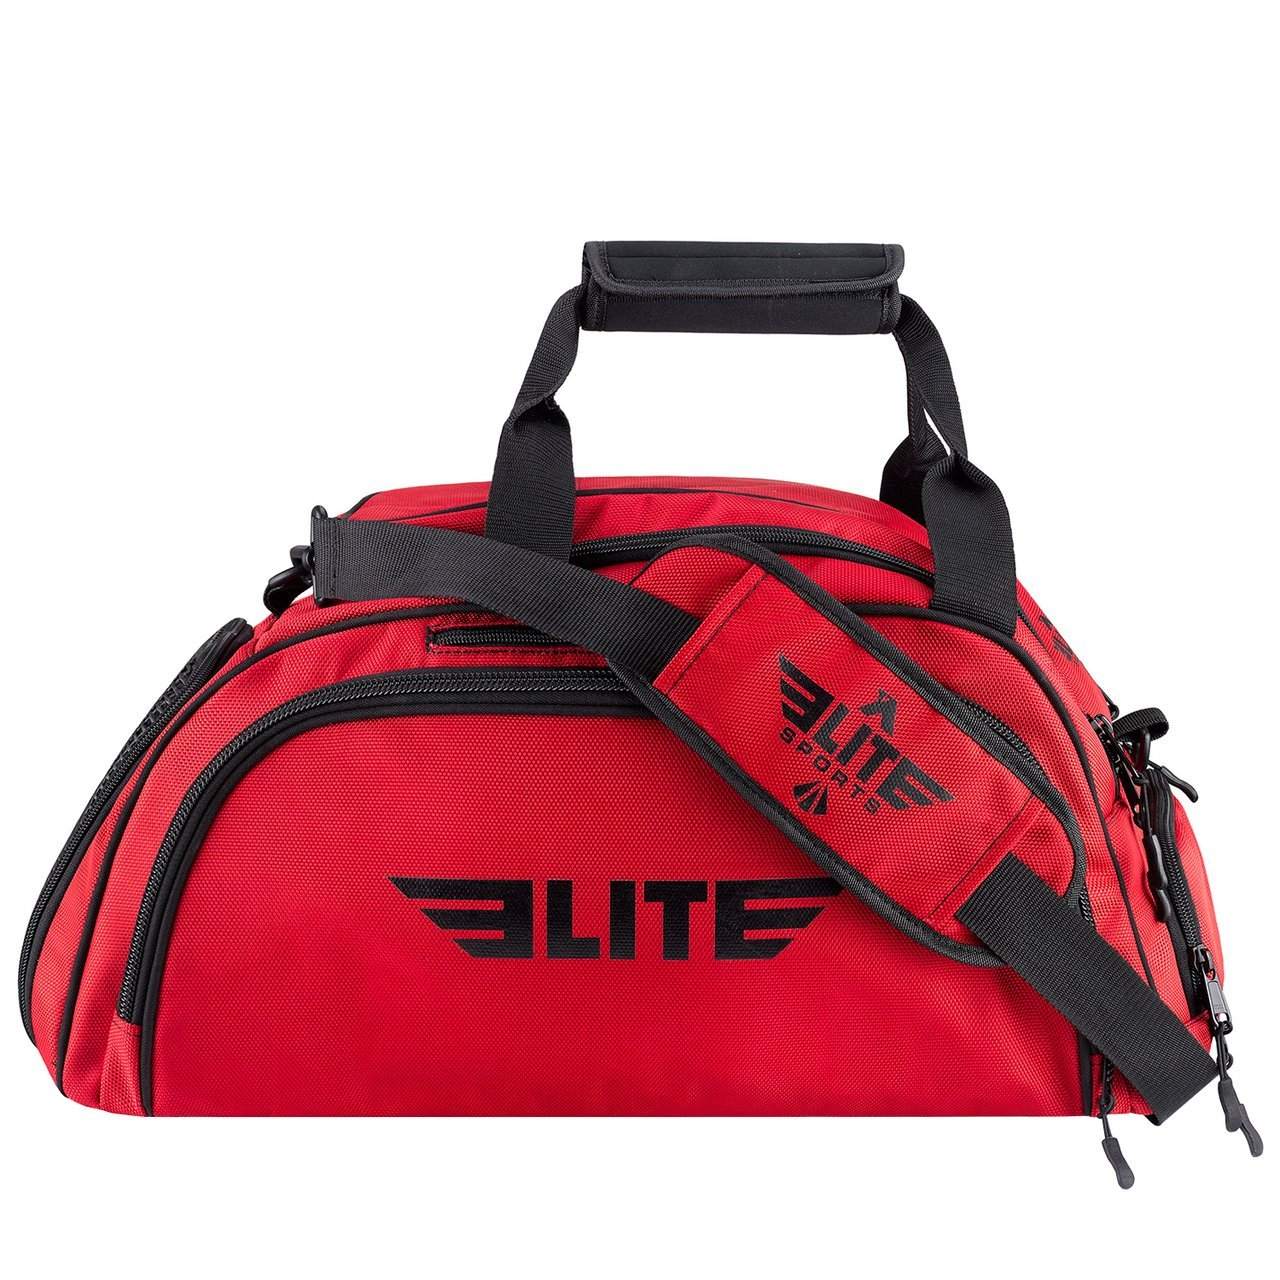 Load image into Gallery viewer, Elite Sports Warrior Series Red Large Duffel Crossfit Gear Gym Bag & Backpack